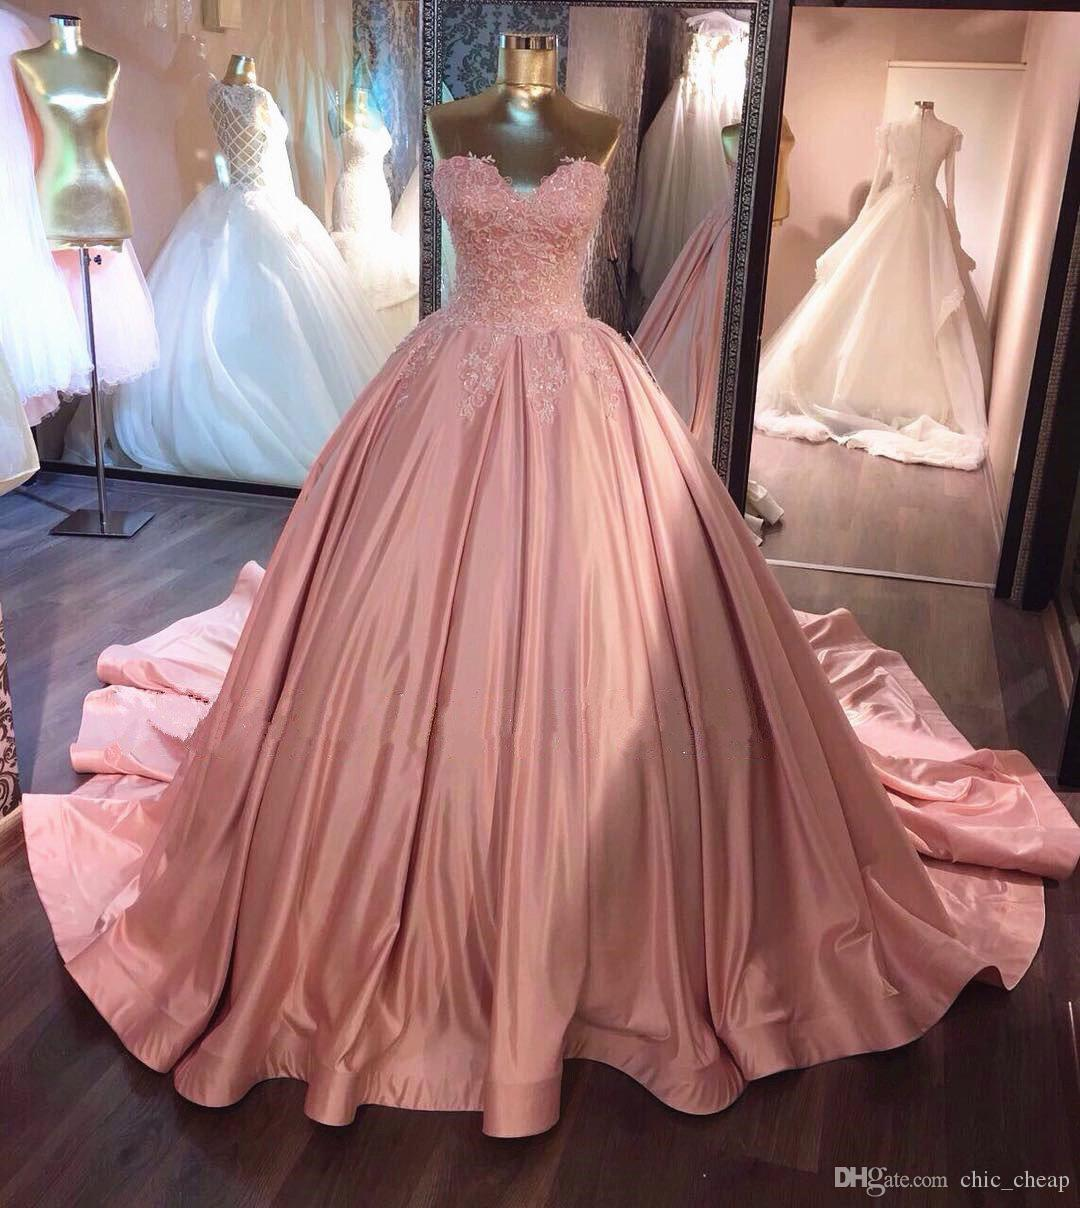 23b0db5641b Sweetheart Ball Gown Quinceanera Dresses With Corset Bacl Sweep Train  Sleeveless Ball Gown Prom Dresses With Lace Top Custom Quinceanera Dresses  Damas ...